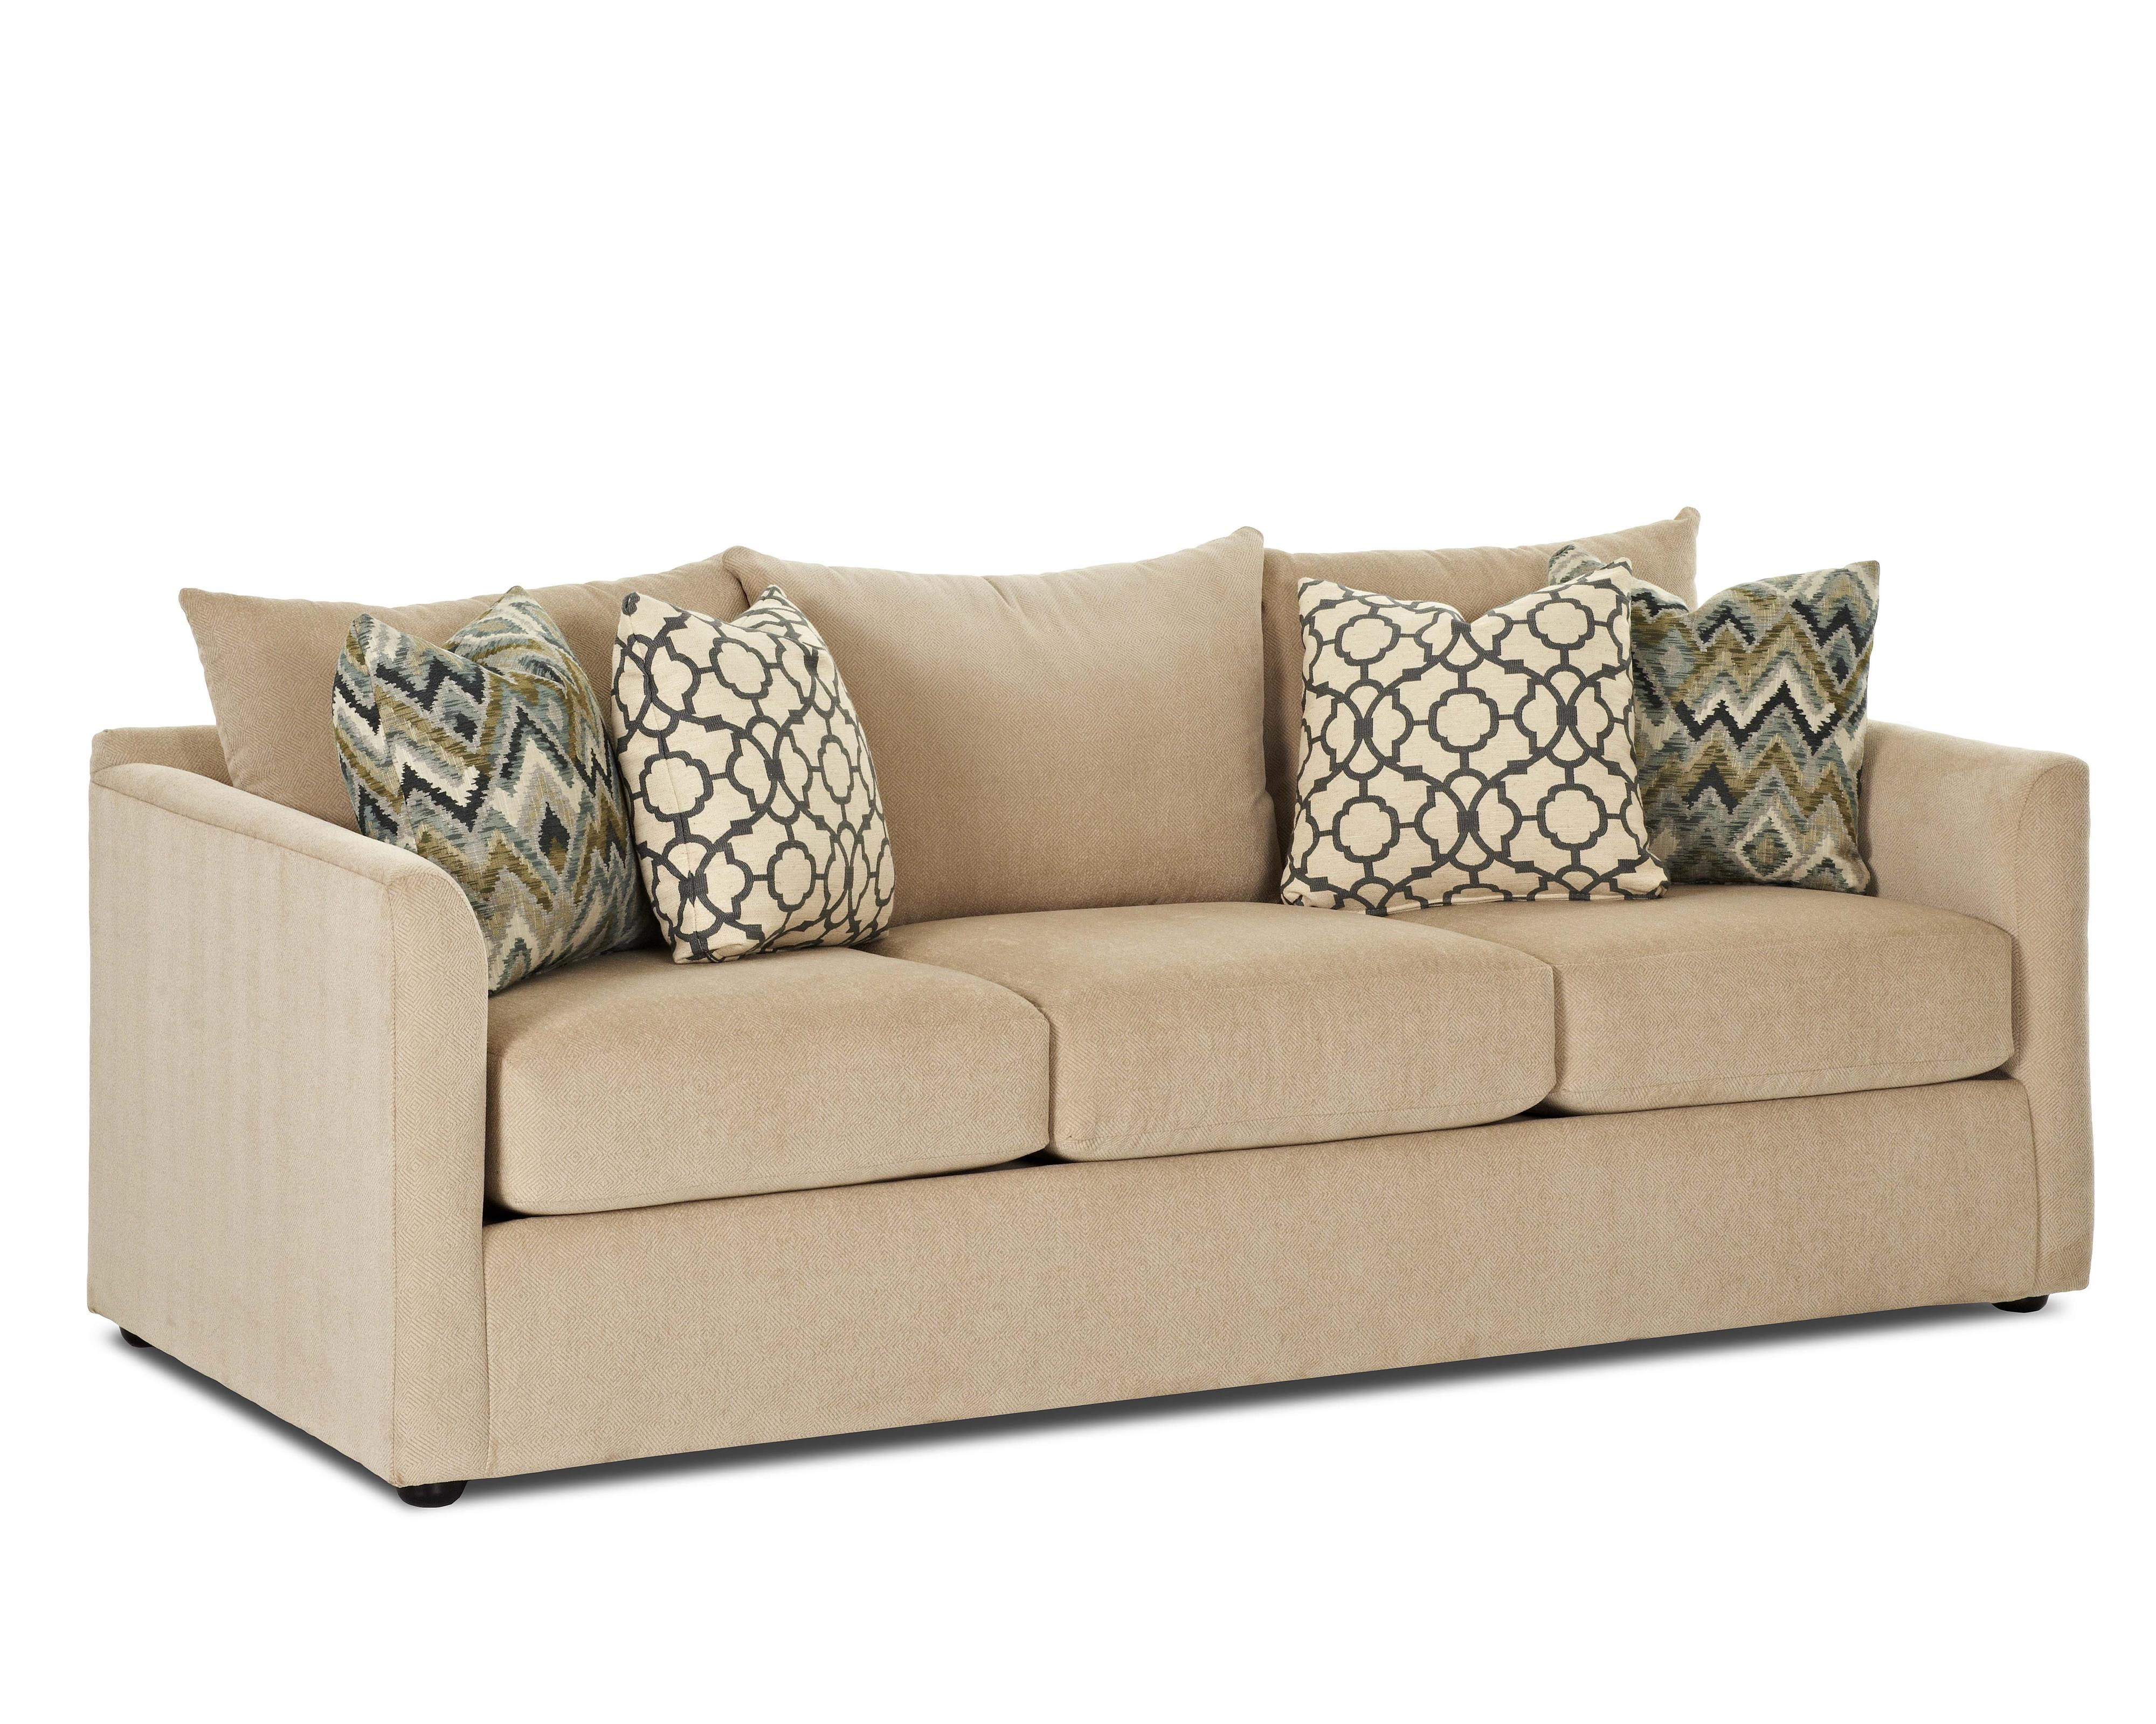 Atlanta Sleeper Sofa w/ AirCoil Mattress by Klaussner at Van Hill Furniture